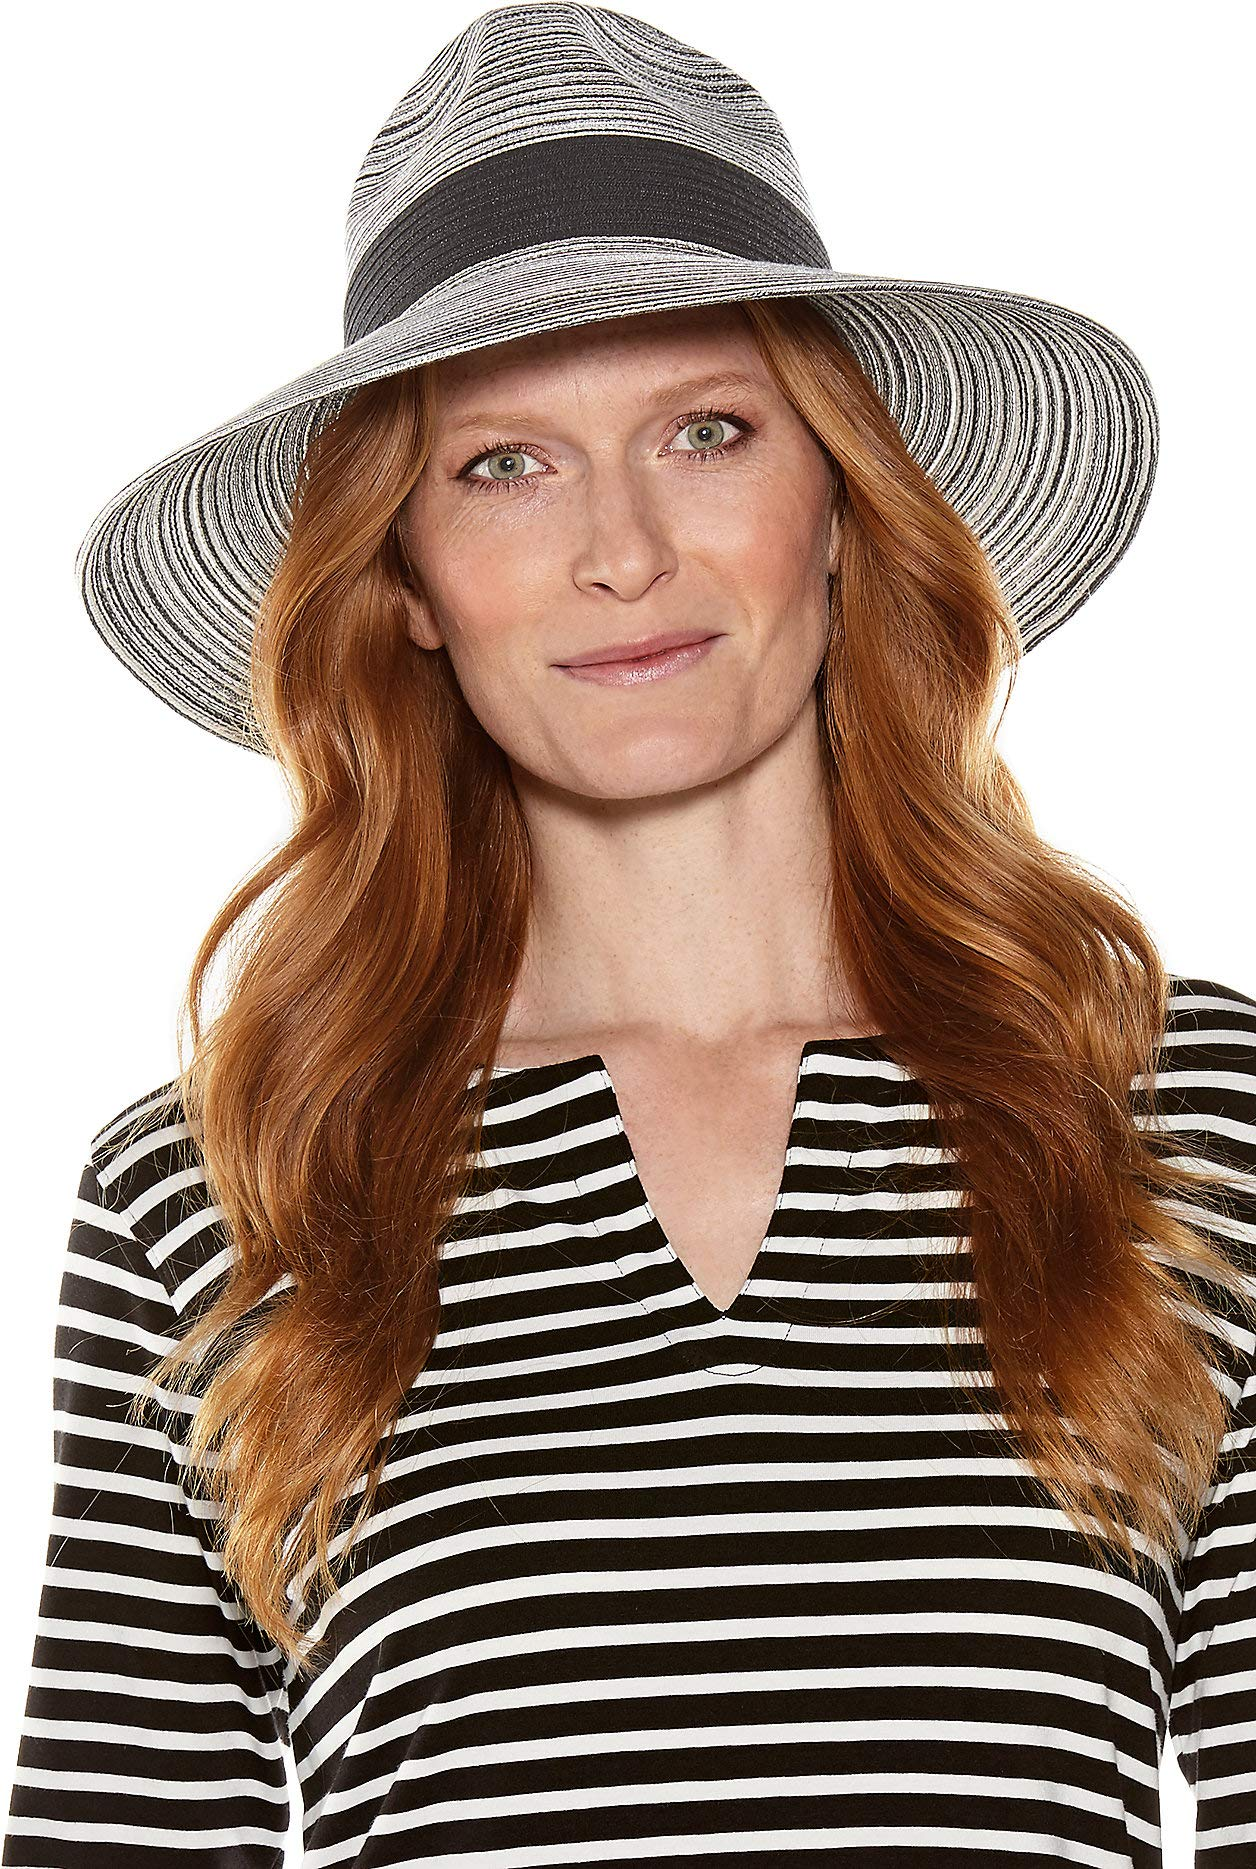 Coolibar UPF 50+ Women's Sophia Fedora - Sun Protective (One Size- Black/White Colorblock)